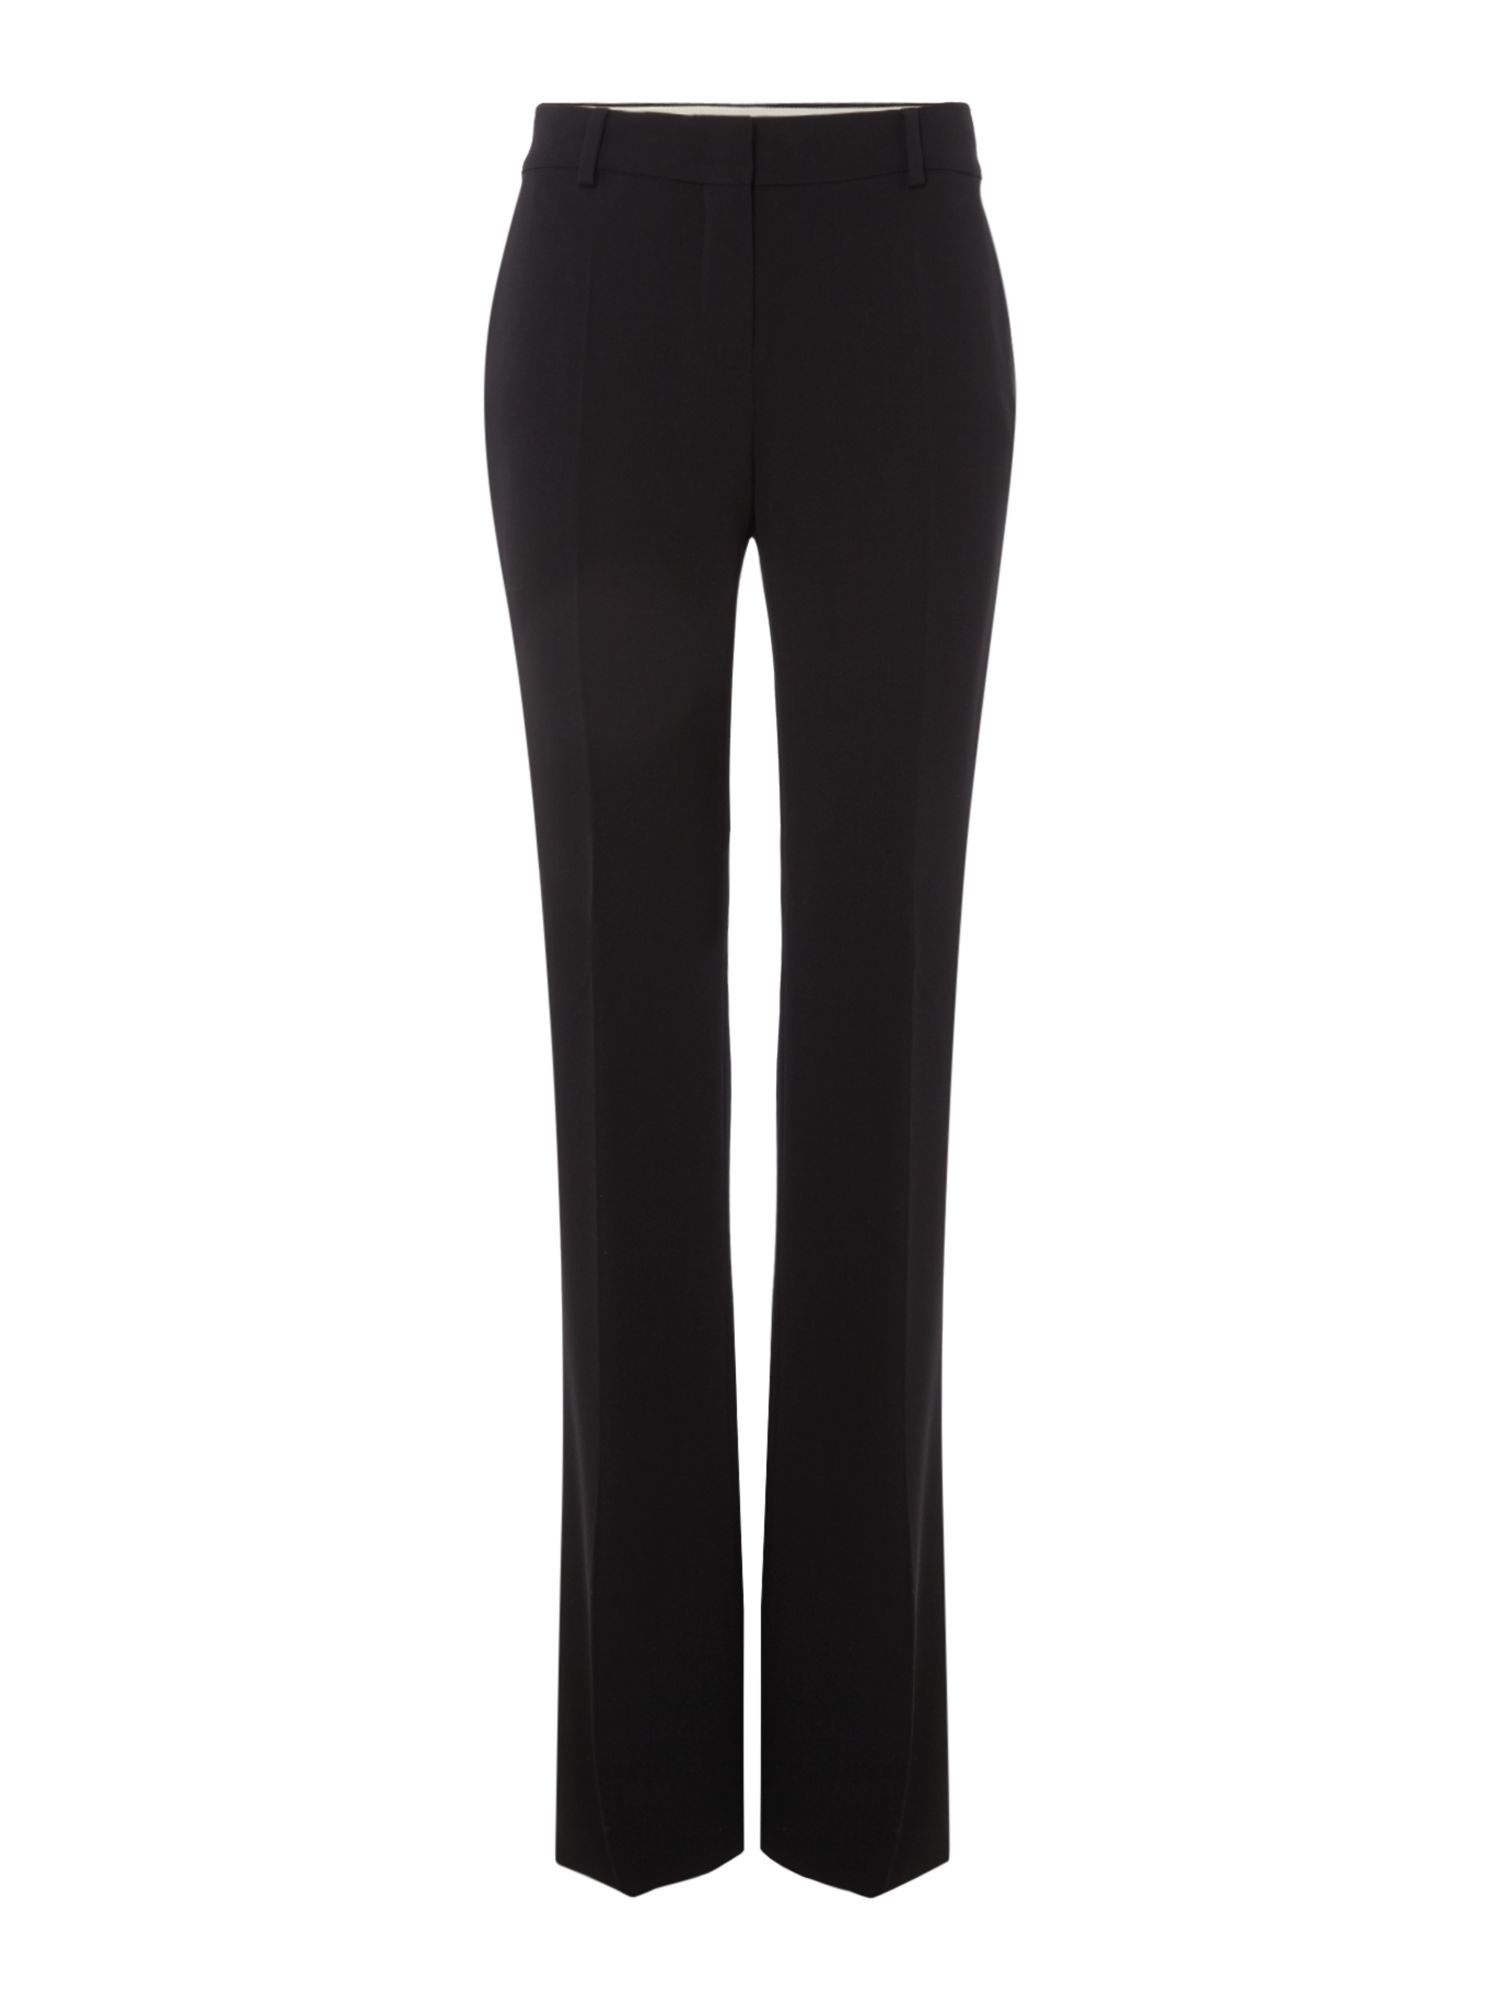 Max Mara Studio Sam palazzo straight leg trouser, Black